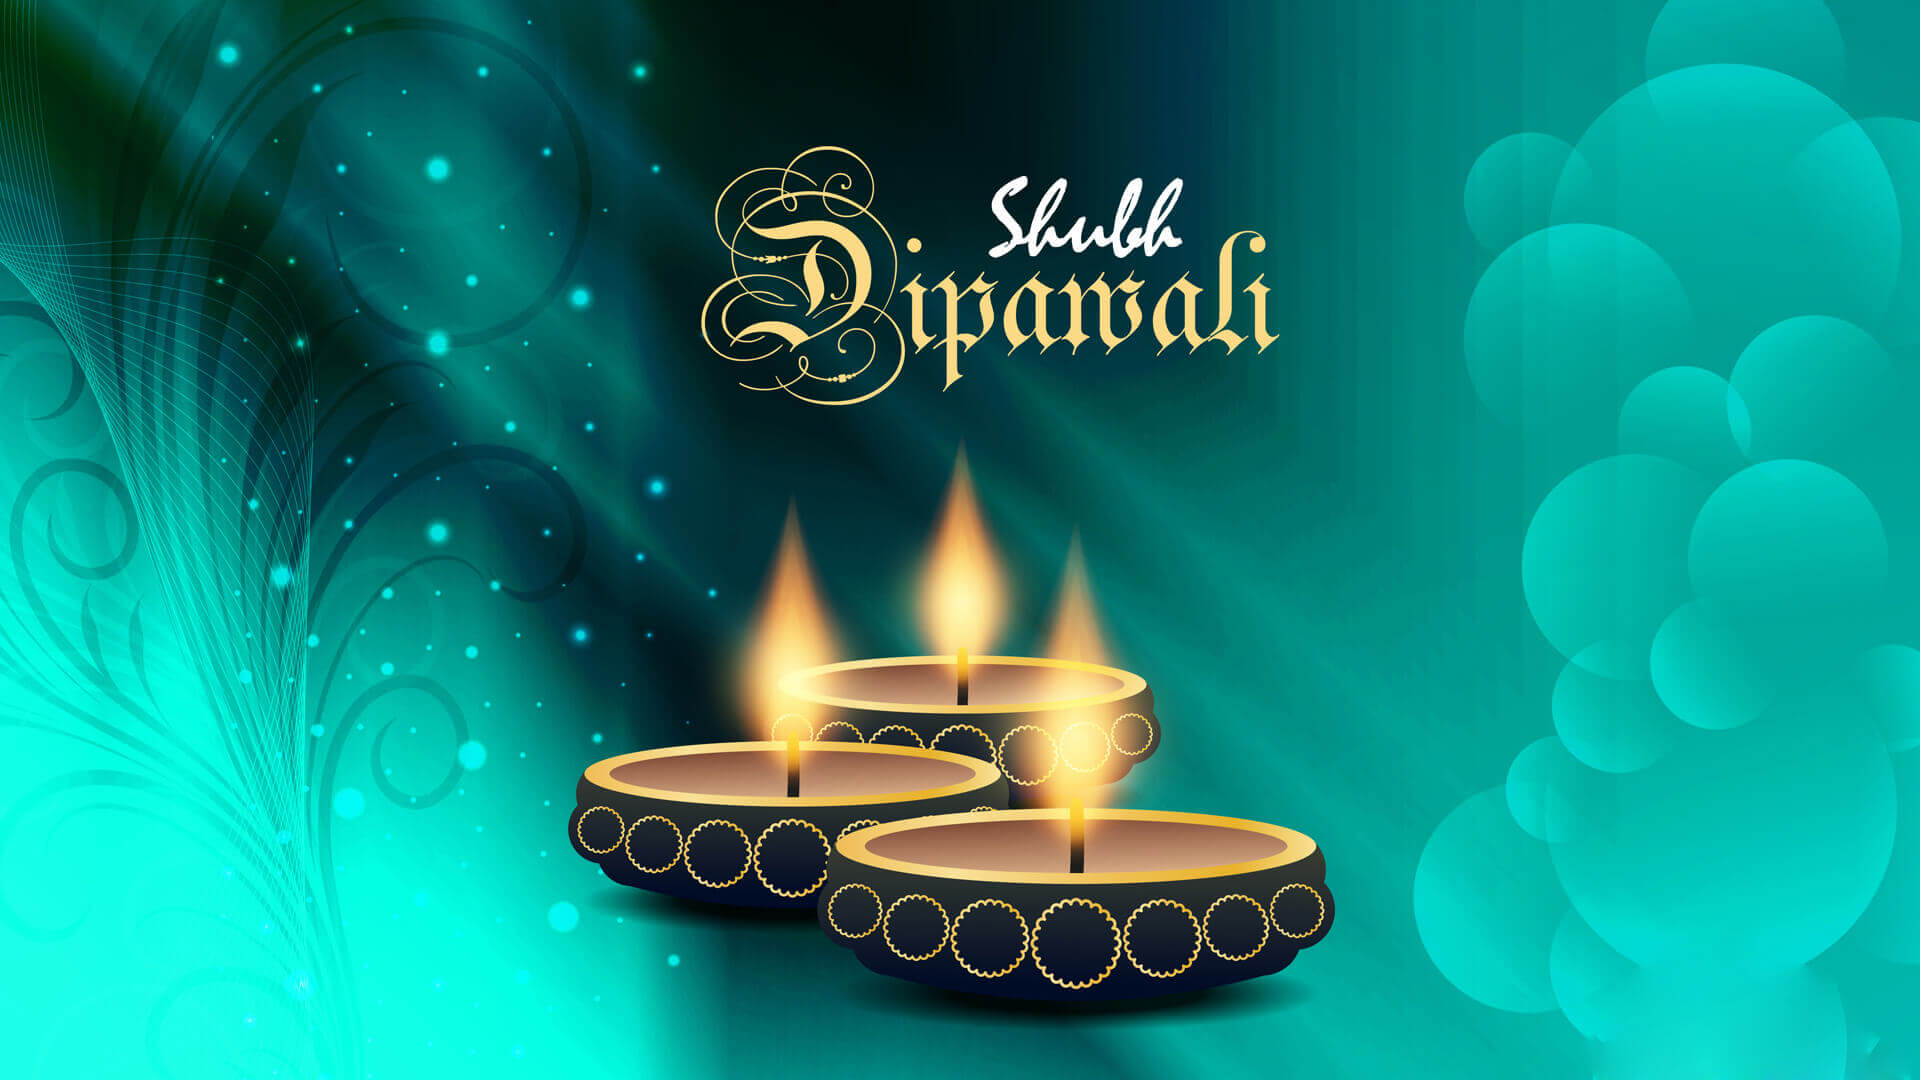 shubh happy diwali deepavali pc desktop hd wallpaper